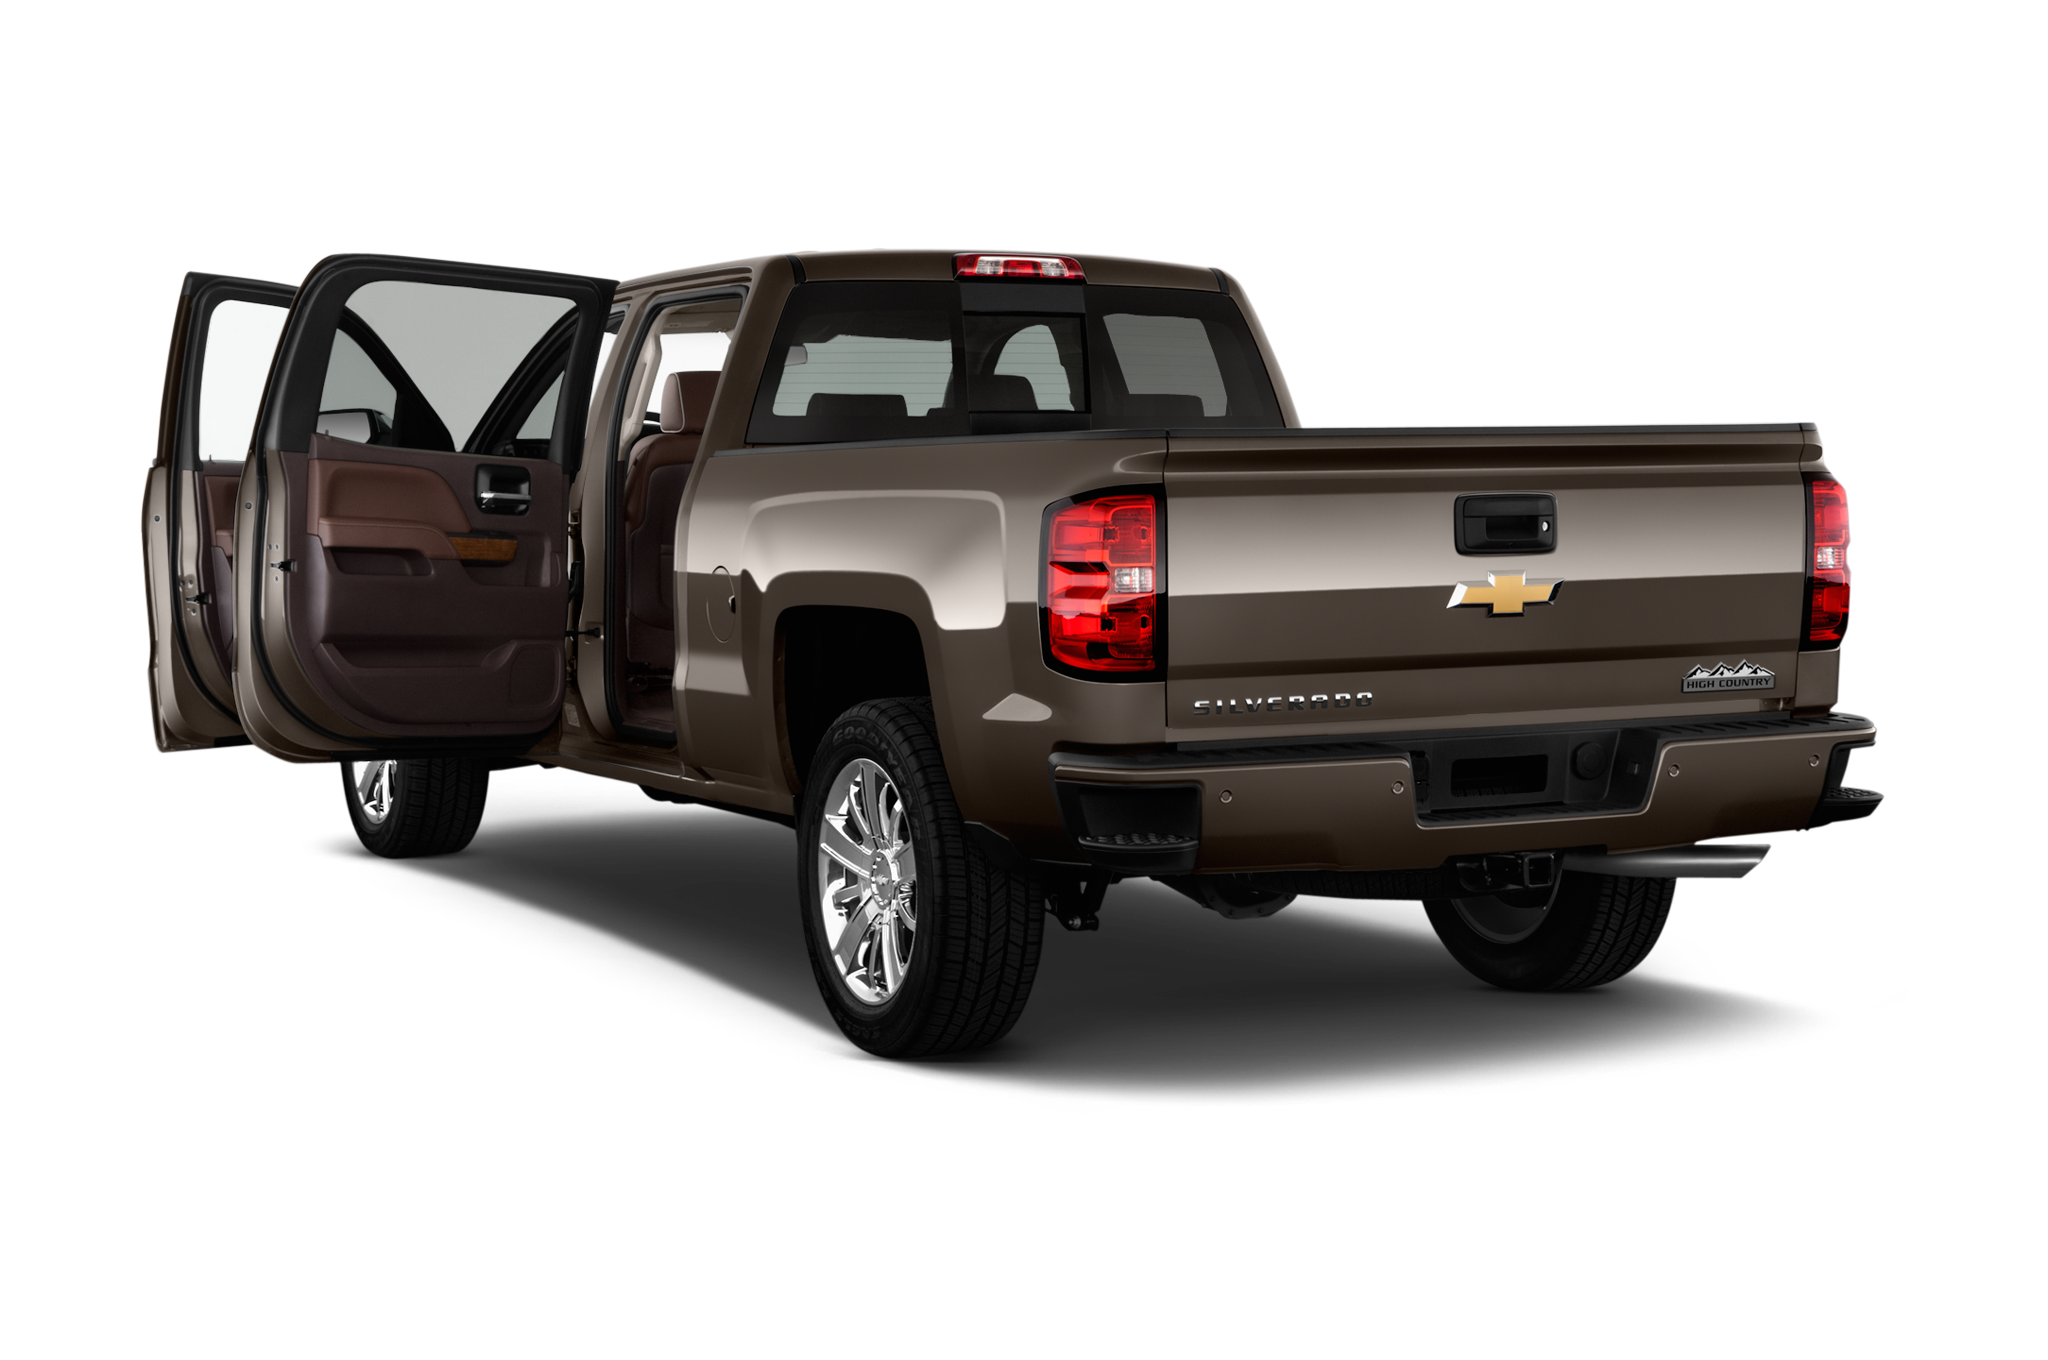 2016 chevrolet silverado gmc sierra add eassist hybrid automobile magazine. Black Bedroom Furniture Sets. Home Design Ideas